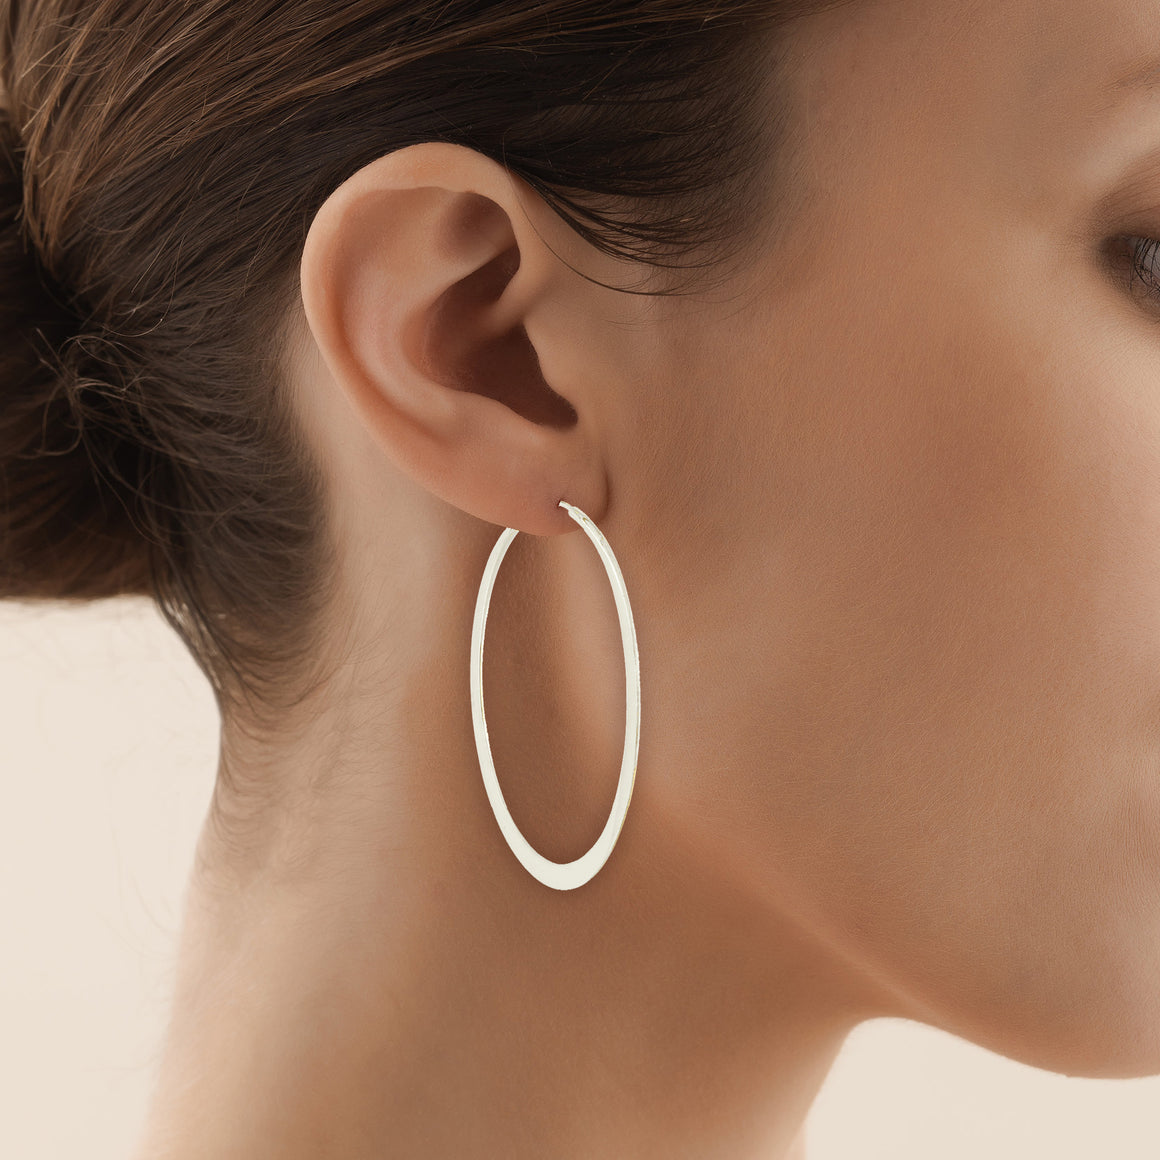 Endless Hoop Earrings in Polished White Gold - 2 inch